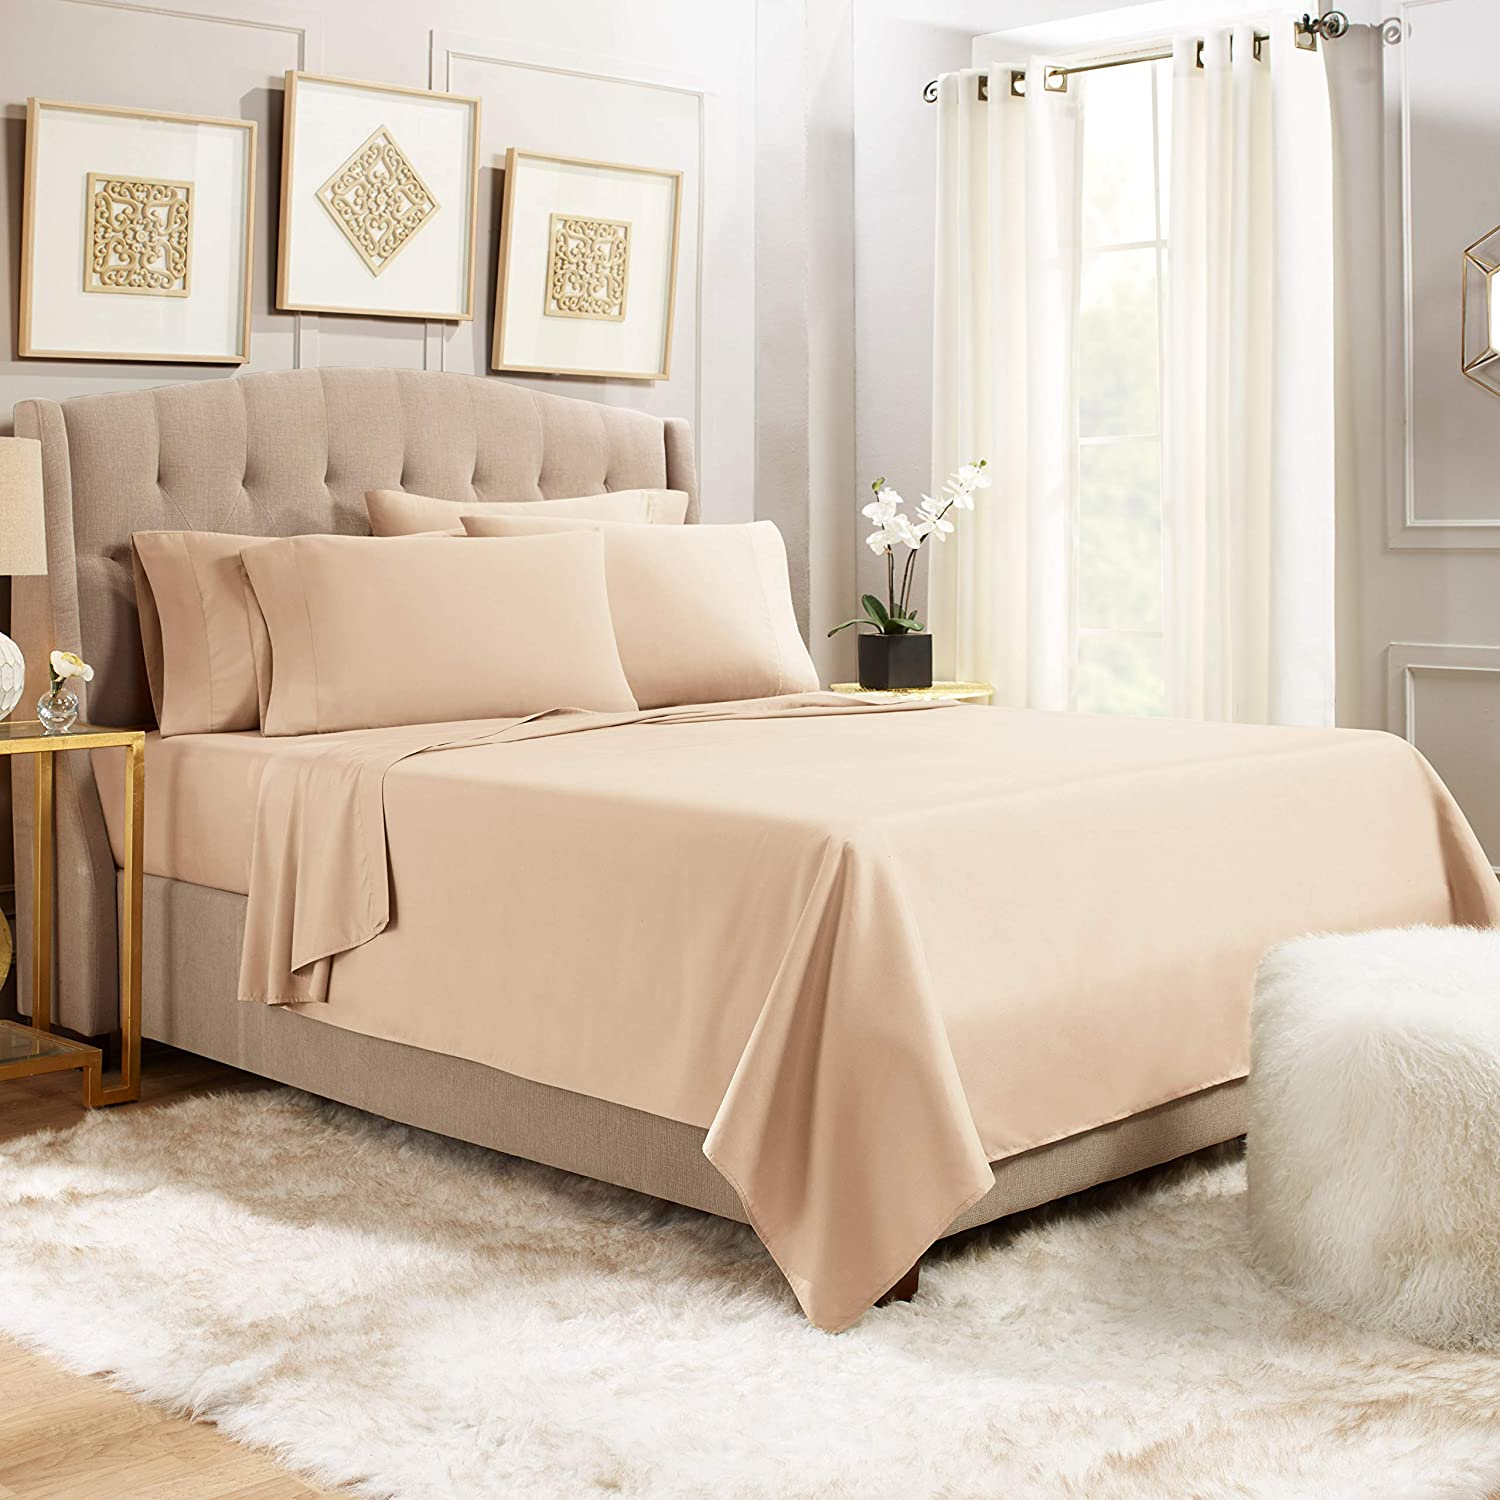 Empyrean Stronger Bed Sheet Set – Holds Longer 110 GSM Heavyweight - Luxury Soft Double Brushed Microfiber – 6 Piece Sheets with 4 Pillowcases – Tight Fit Straps Fitted Sheet – King Size, Taupe Sand